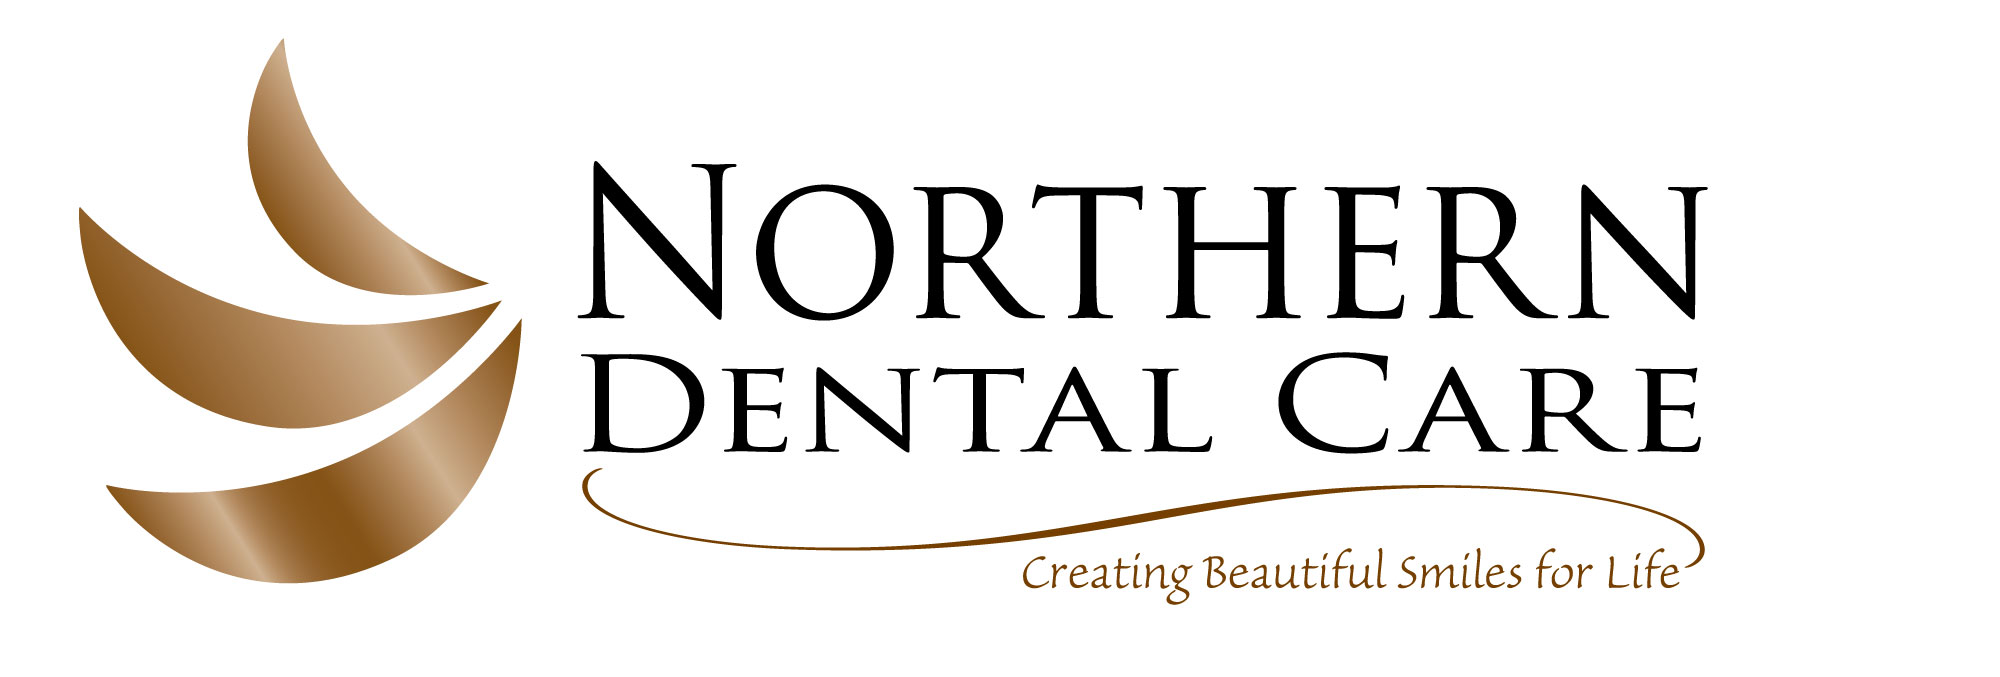 Northern Dental Care - Sault Ste Marie, ON P6B 4Z9 - (705)999-6848 | ShowMeLocal.com